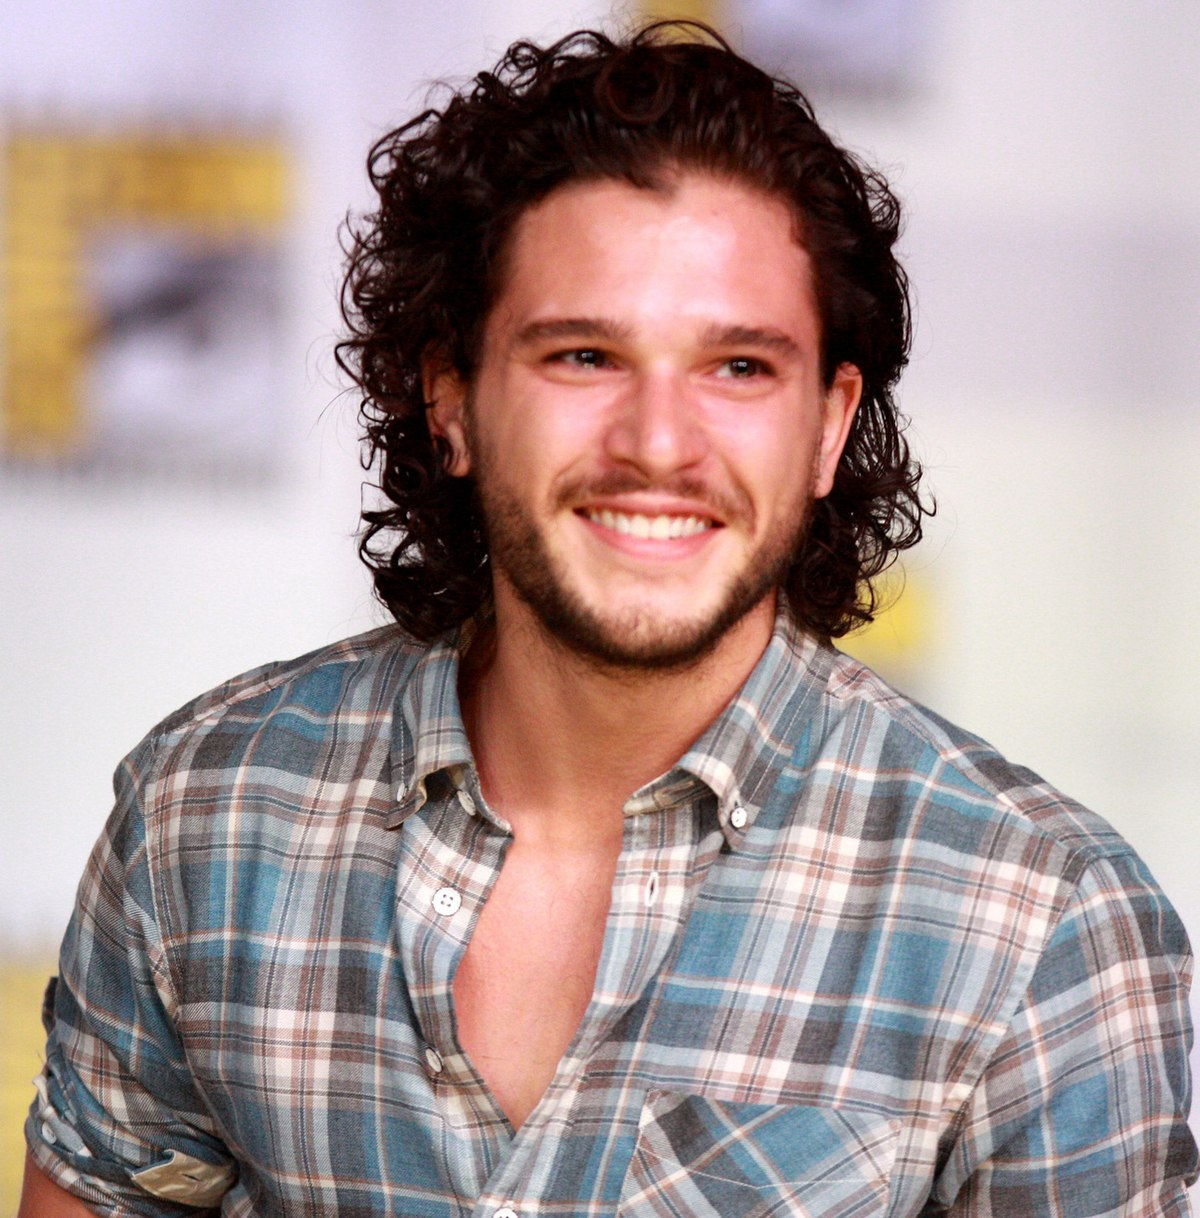 Kit Harington (born 1986)